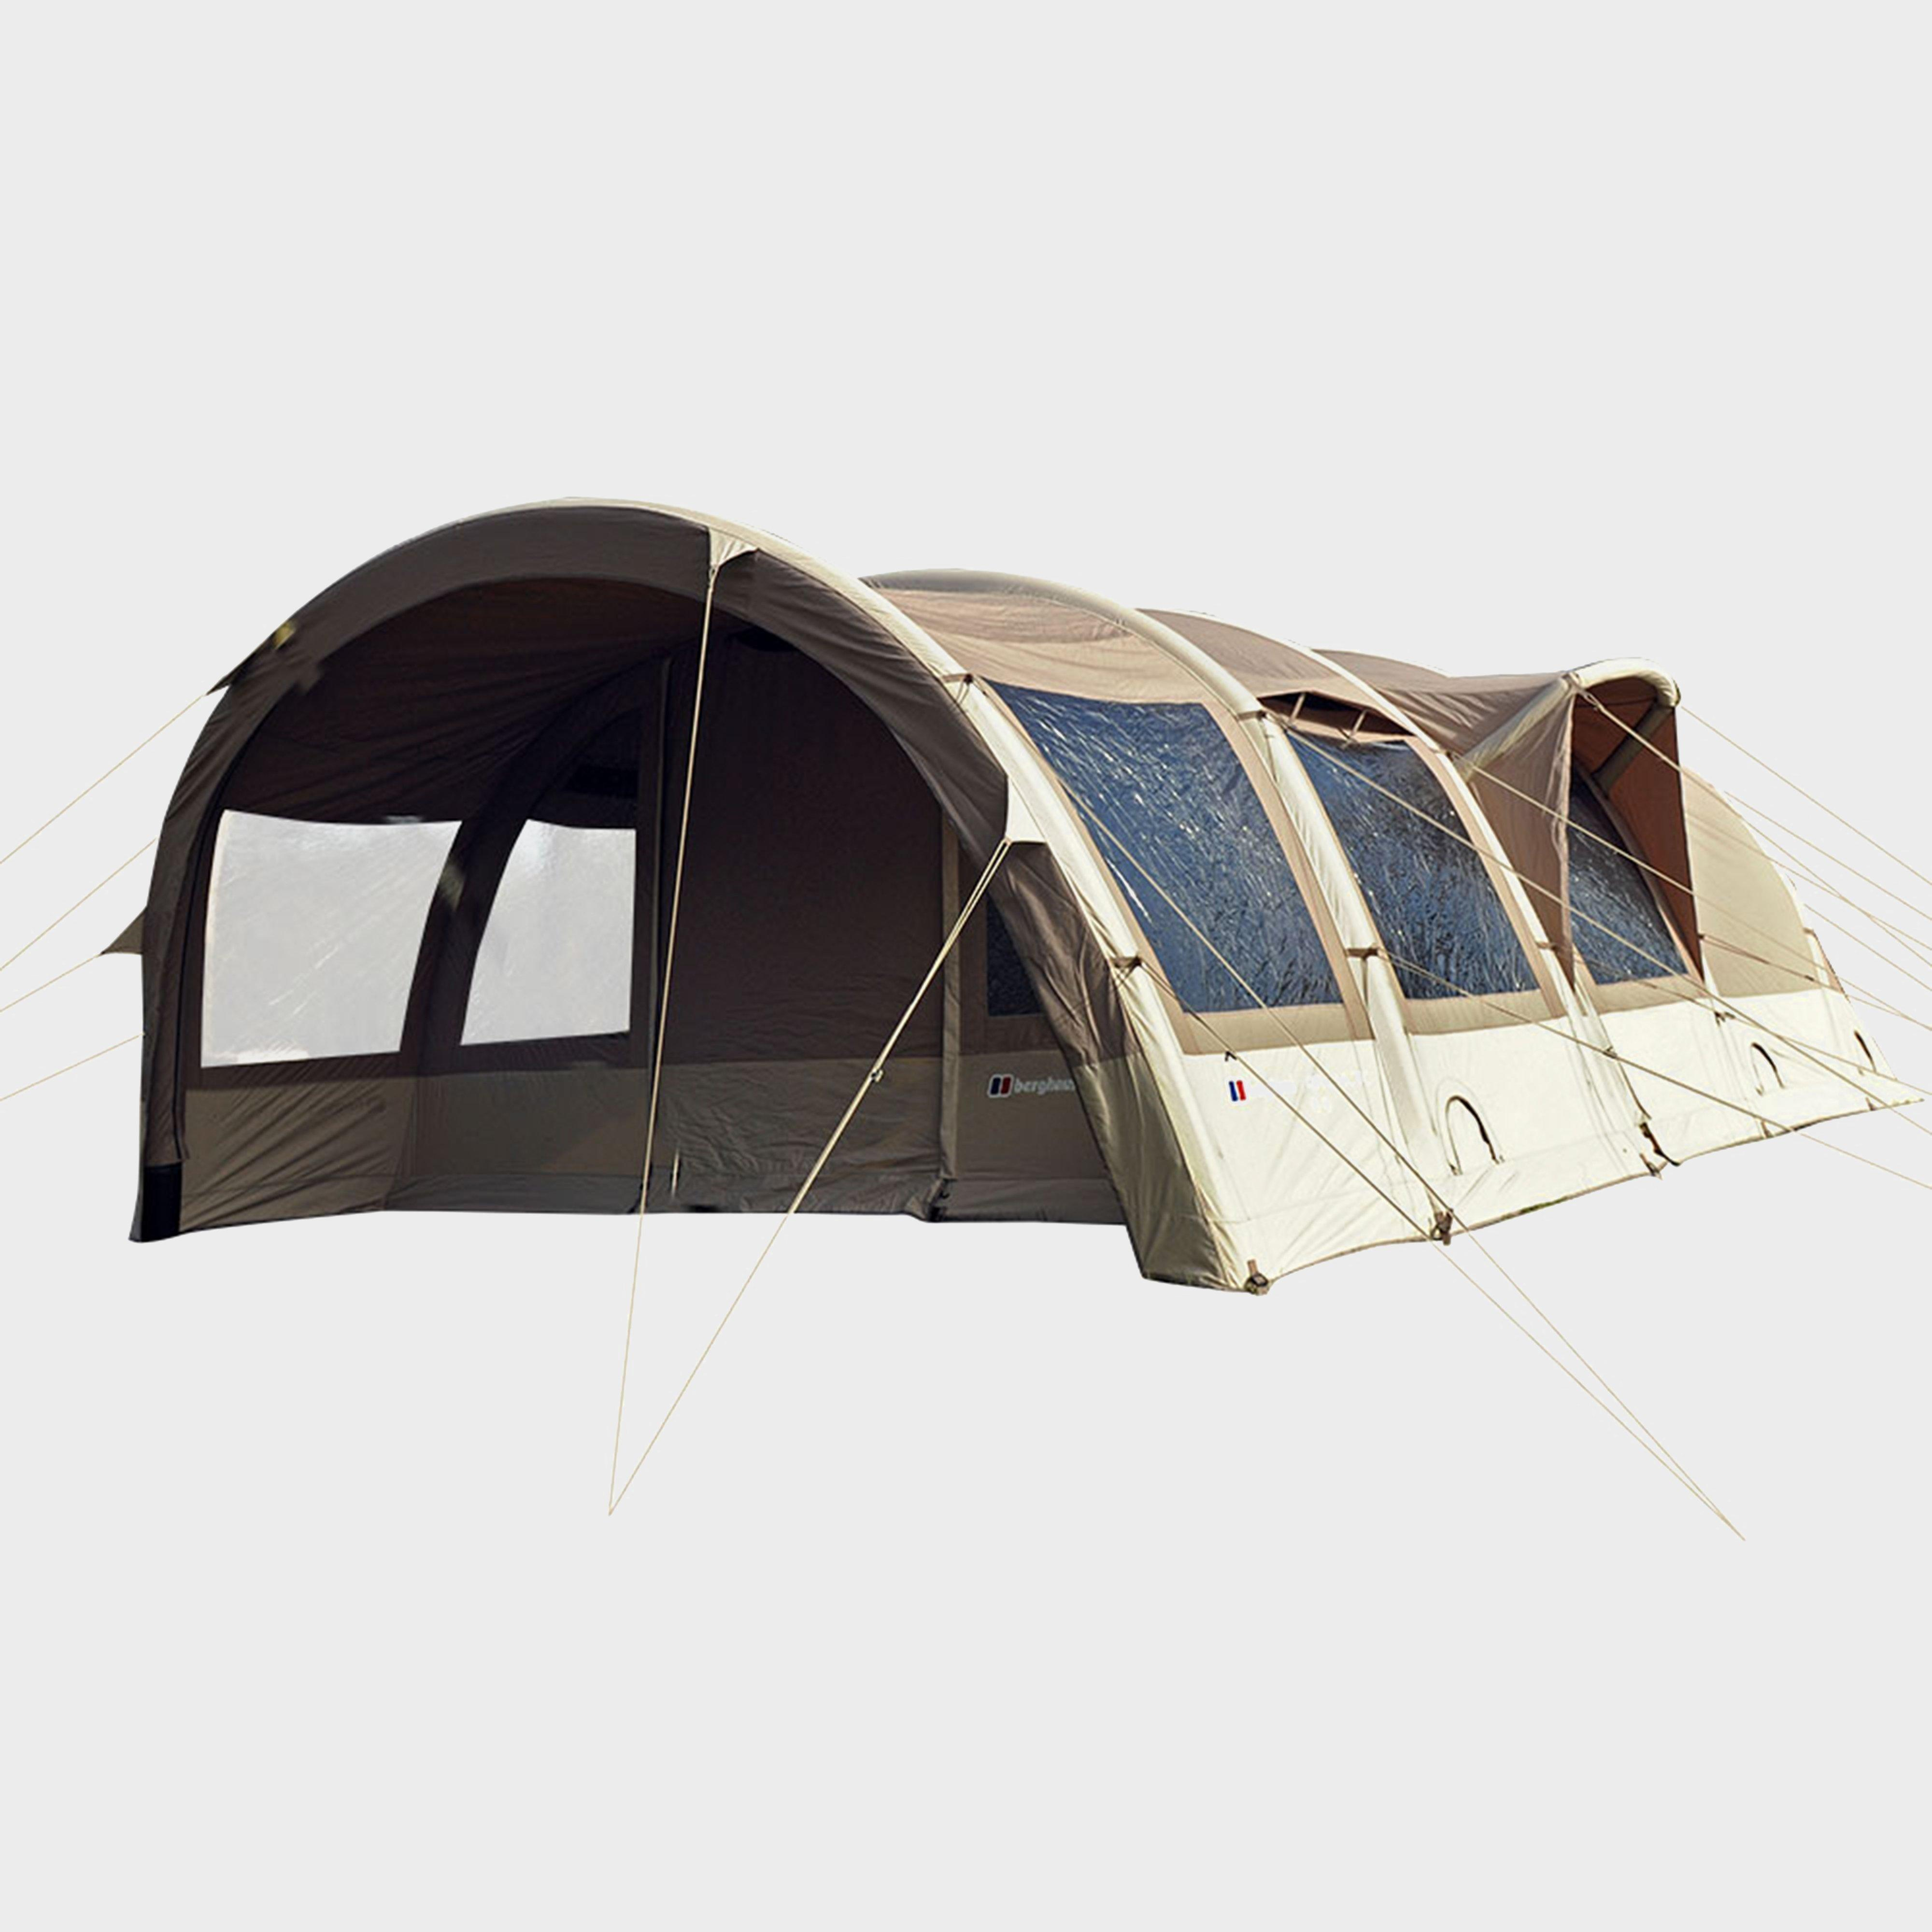 new specials available new design Details about New Berghaus Air 6 XL Polycotton Family Tent